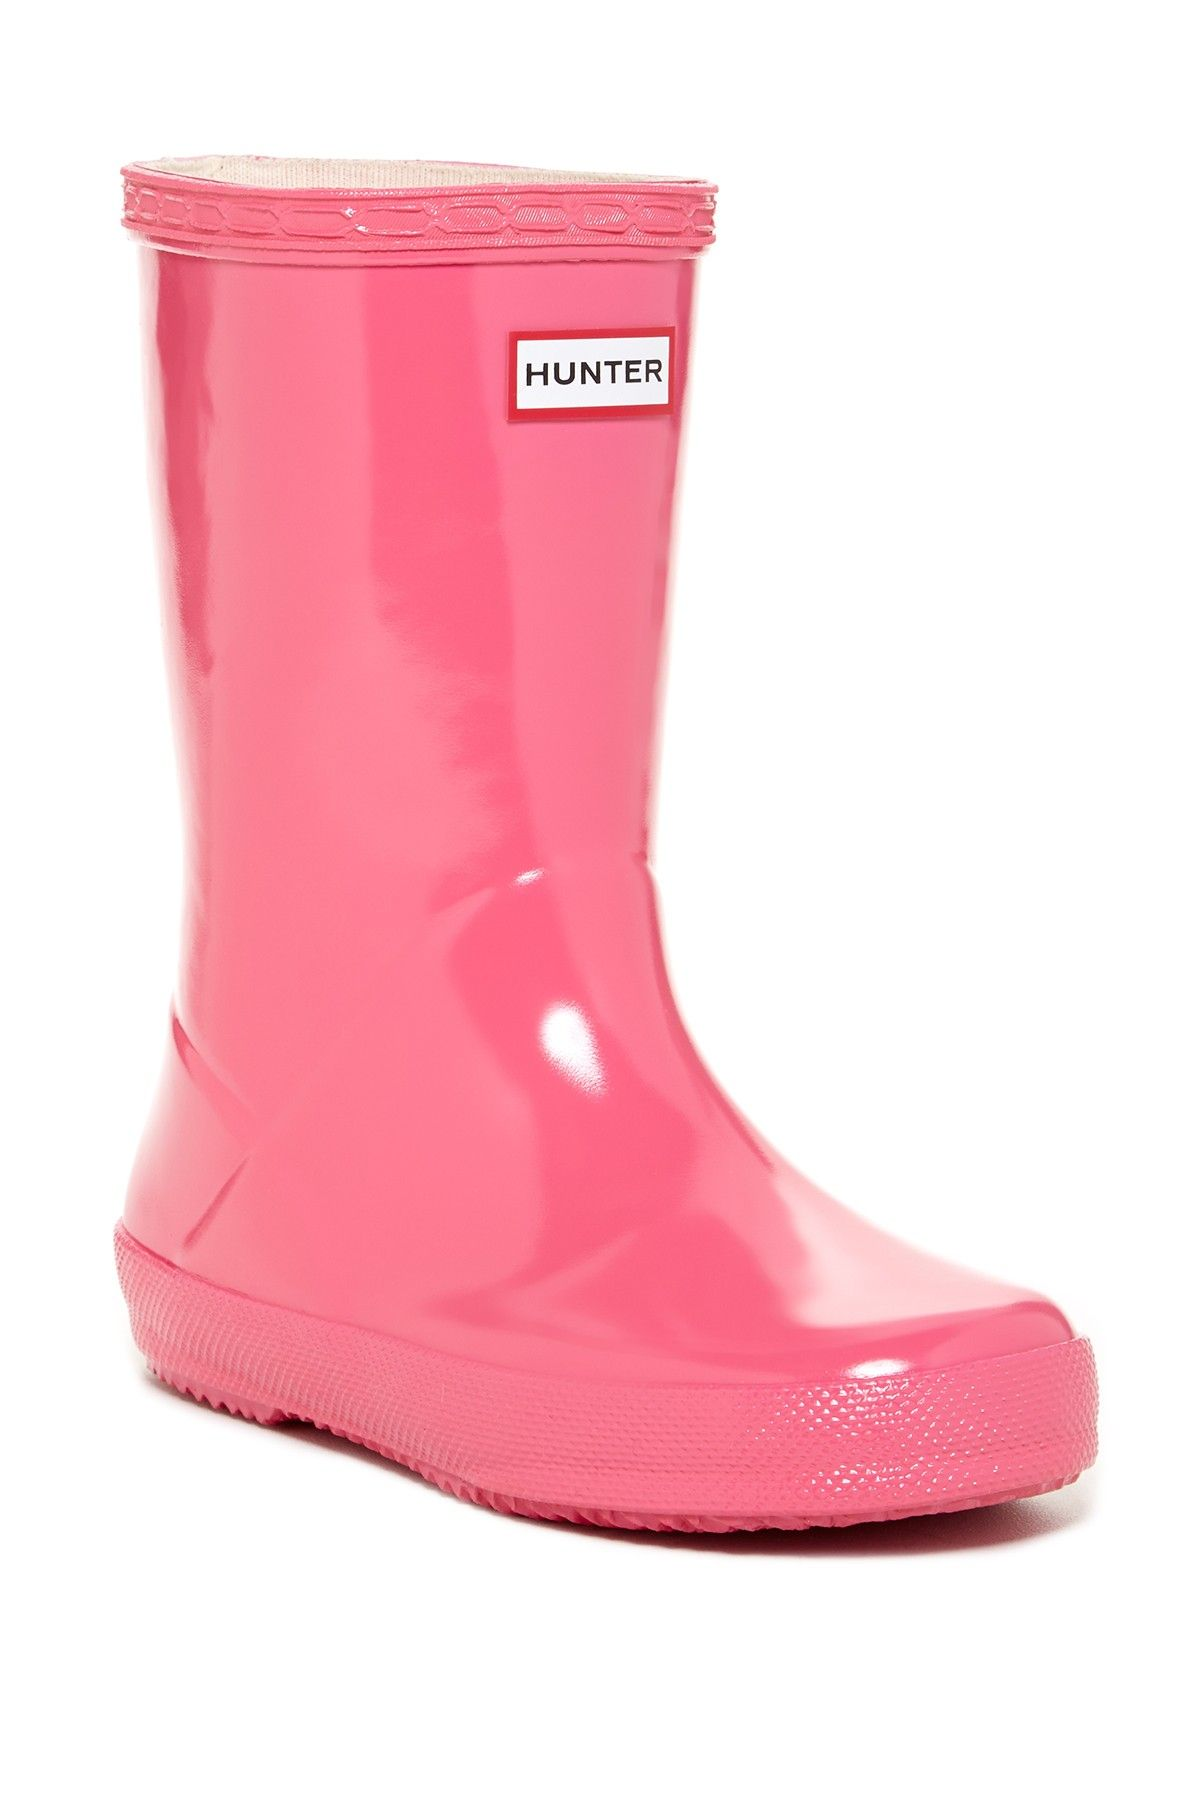 Toddler Hunter Rain Boots Size 8 In 2020 Toddler Hunter Rain Boots Hunter Rain Boots Toddler Hunter Boots